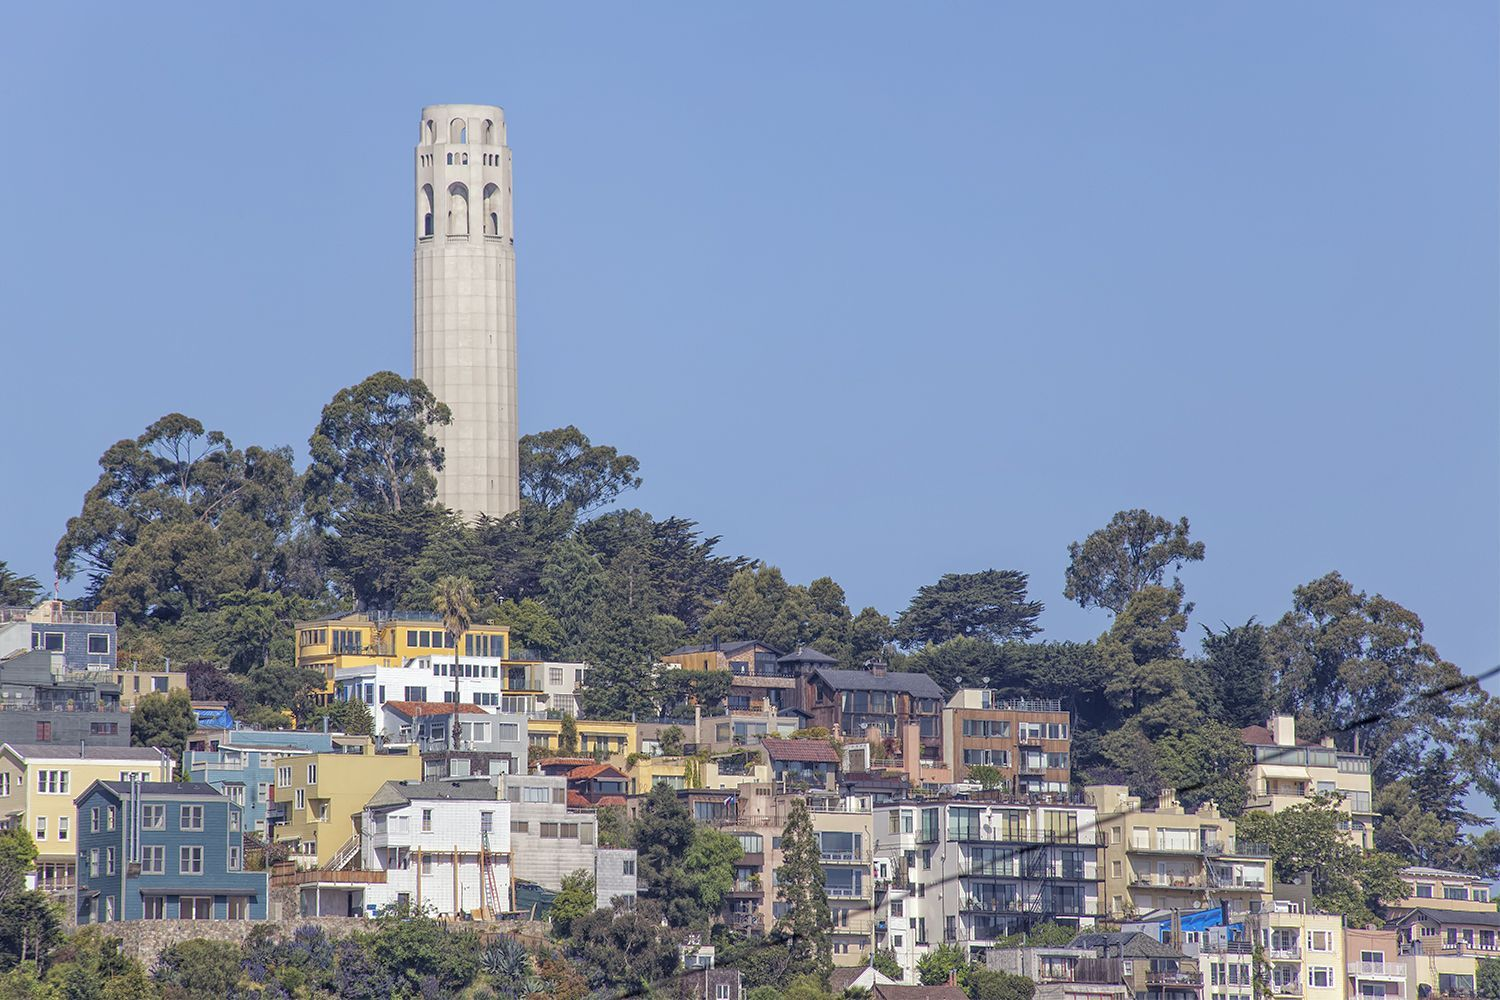 Coit Tower   Coit Tower is an unmistakable part of the city's skyline, sitting at the top of Telegraph Hill. If you make your way to the top, you'll get a beautiful 360 view of the city.   More Info On Coit Tower Here